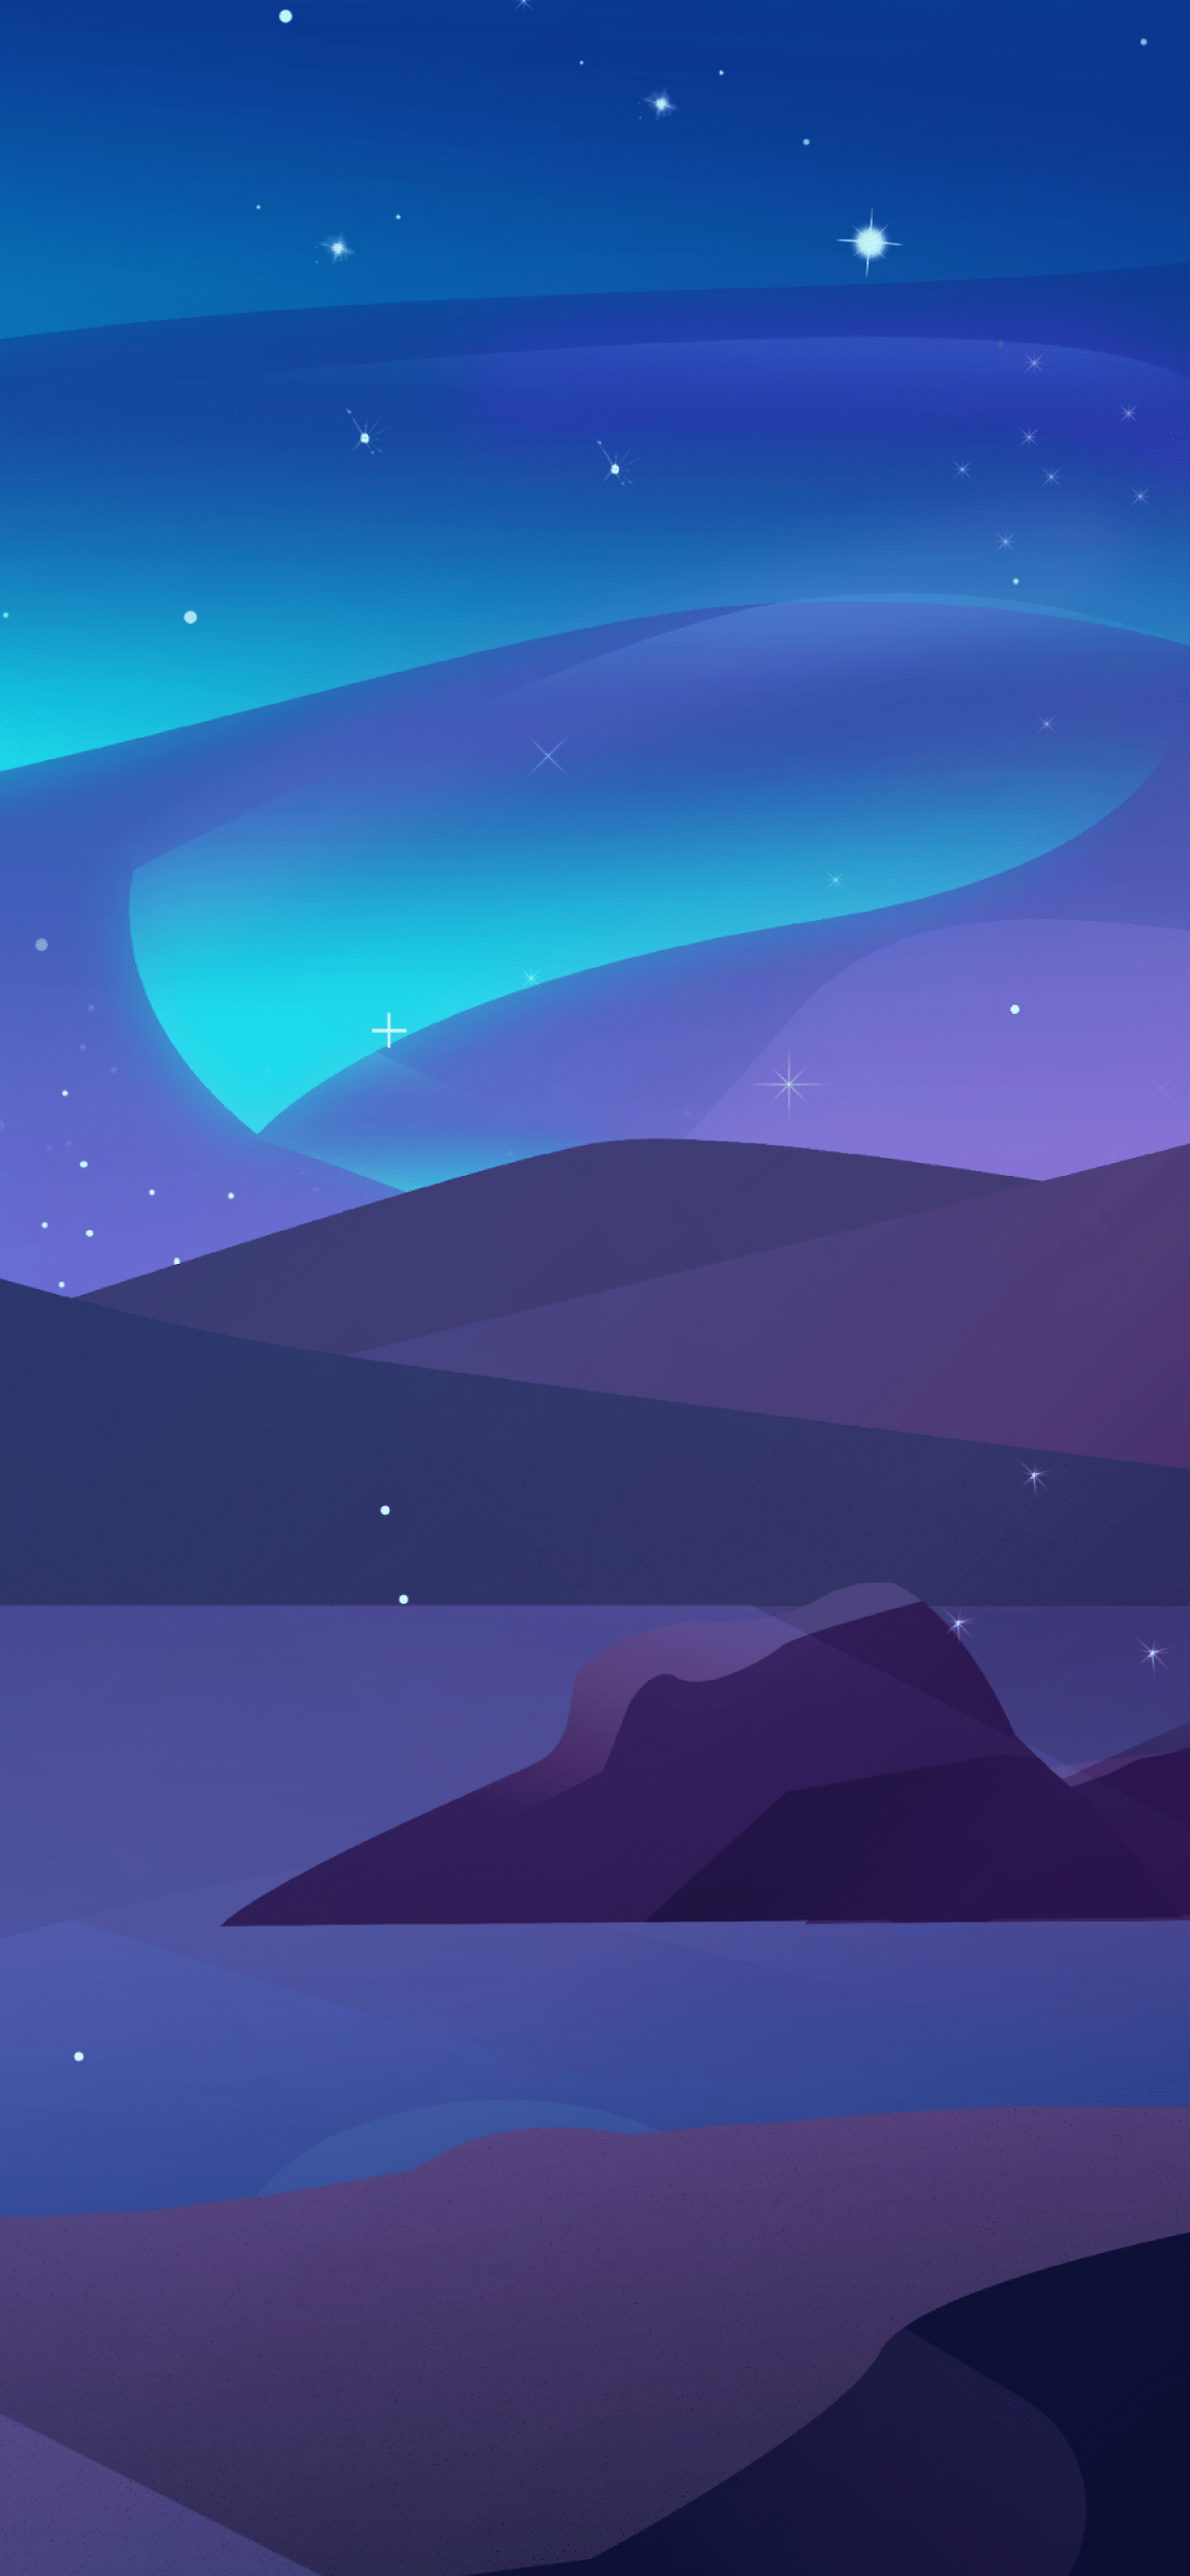 iPhone wallpapers illustration starry night Illustration